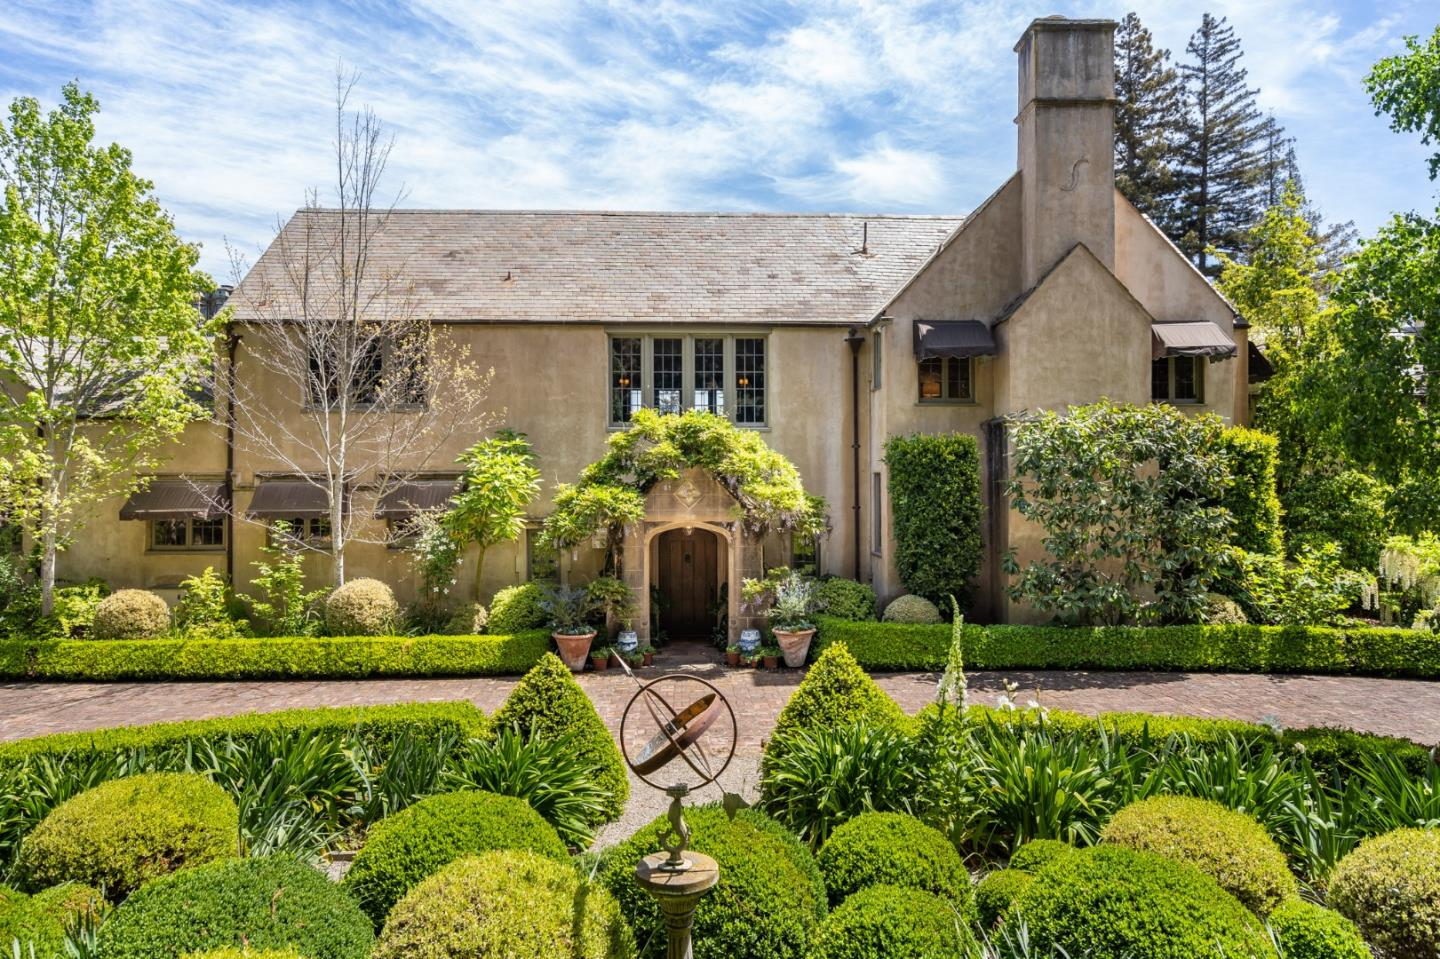 """Built in the mid 1920s, """"Treehaven"""" was designed by George Howard Jr., a member of the first American family to settle in the area named, Hillsborough. The current owners have beautifully restored and modernized this one-of-a-kind property.  Now """"Treehaven"""" awaits a new owner. It has that unique quality of design and elegance, that makes it a true setting for family gatherings, galas, and wonderful memories. Featuring over 1.5 acres of professionally manicured gardens, walkways and lawns, this is truly a special property.   Home Features Include: 66,000sf lot, 7160st of Living Space, 5 Bedrooms, 7 Bathrooms, 2 Half Baths, Formal Living/Dining Room, Lead Glass Enclosed Breakfast Area, Master Suite with his/hers Bathroom, Guest House, Gourmet Chefs Kitchen with Wolf Stove and Sub-Zero Refrigerator, Family Room with Fireplace, Office with Private Bathroom, Indoor and Outdoor Pool, Lanai, Tennis Court, 4-Car Garage, Updated Electrical and Plumbing, Lead Glass Windows and Period Details!"""